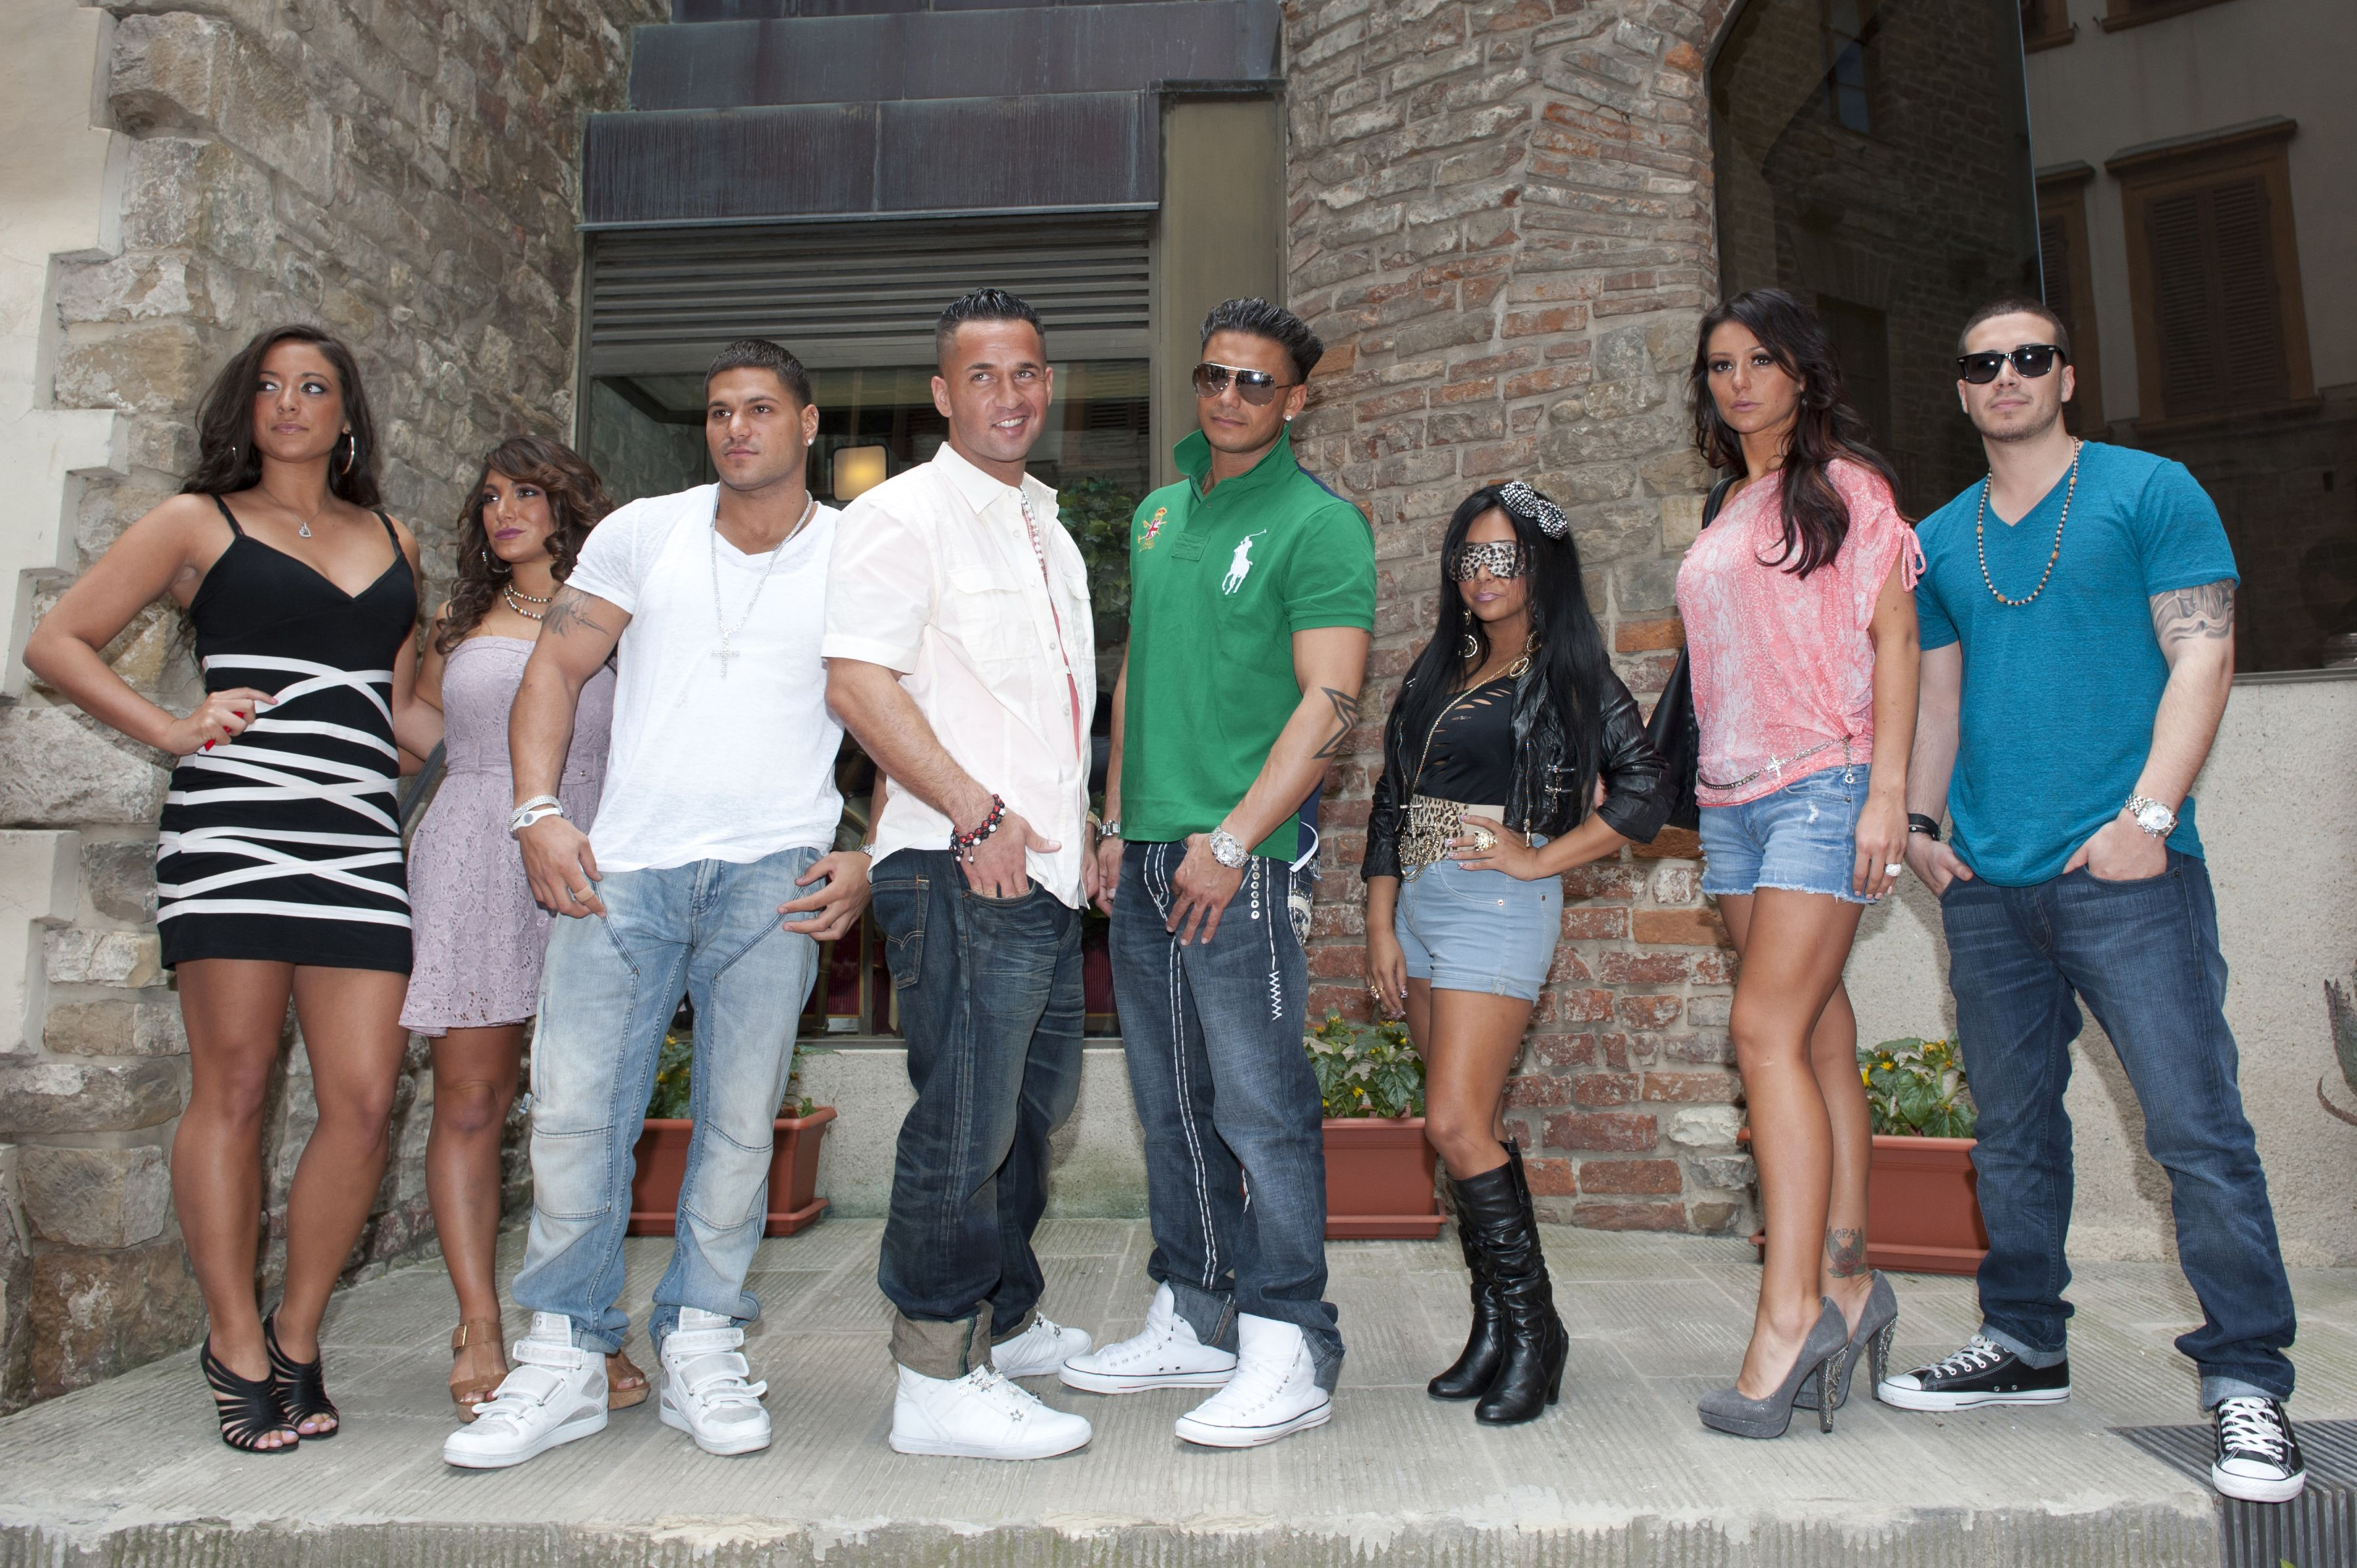 jersey shore coming back